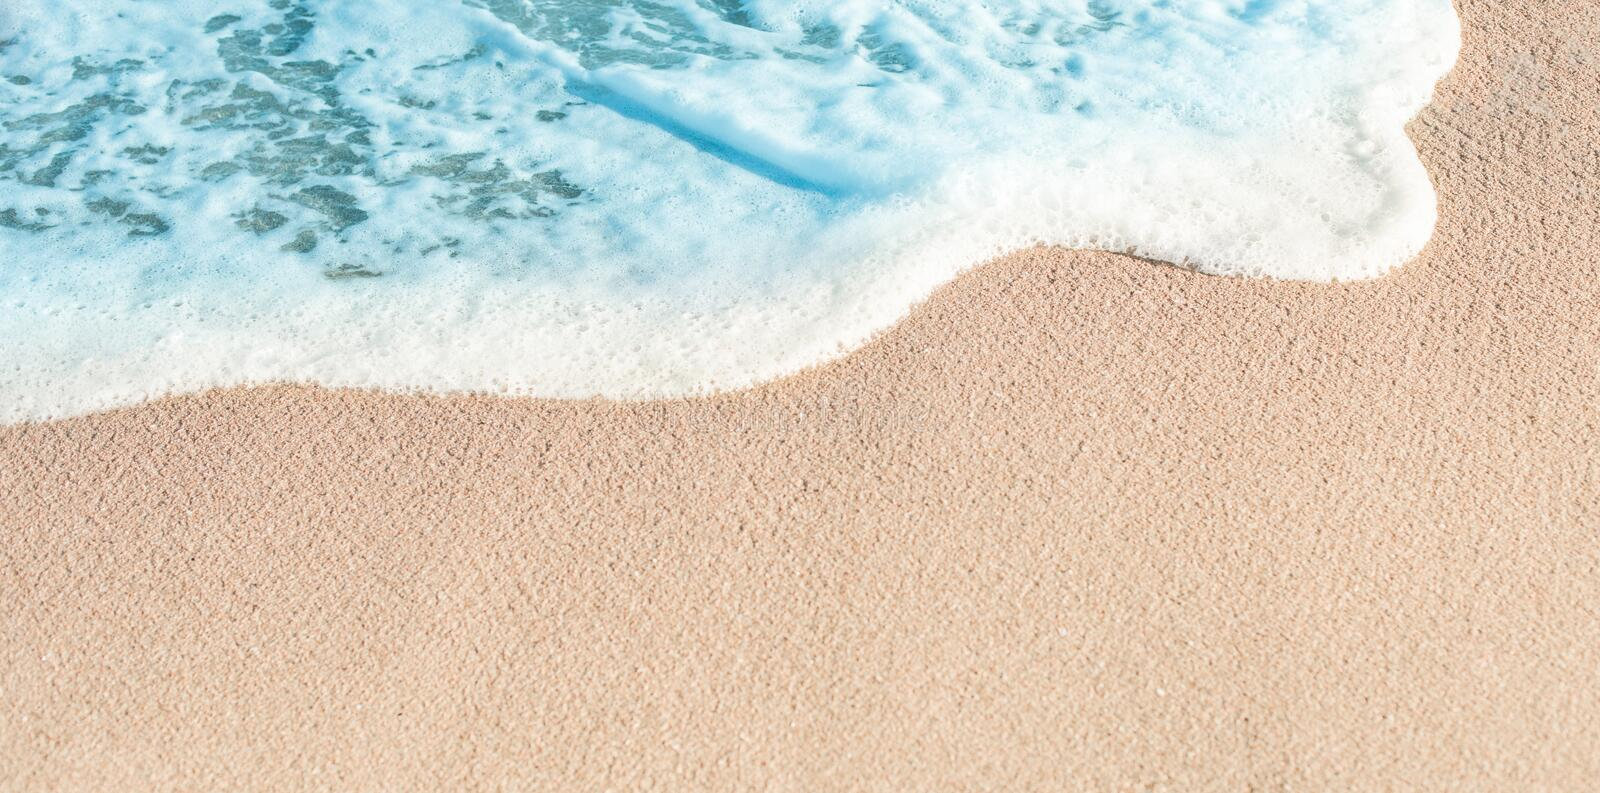 Soft Wave of Blue ocean in summer. Sandy Sea Beach Background w. Ith copy space for text royalty free stock photography